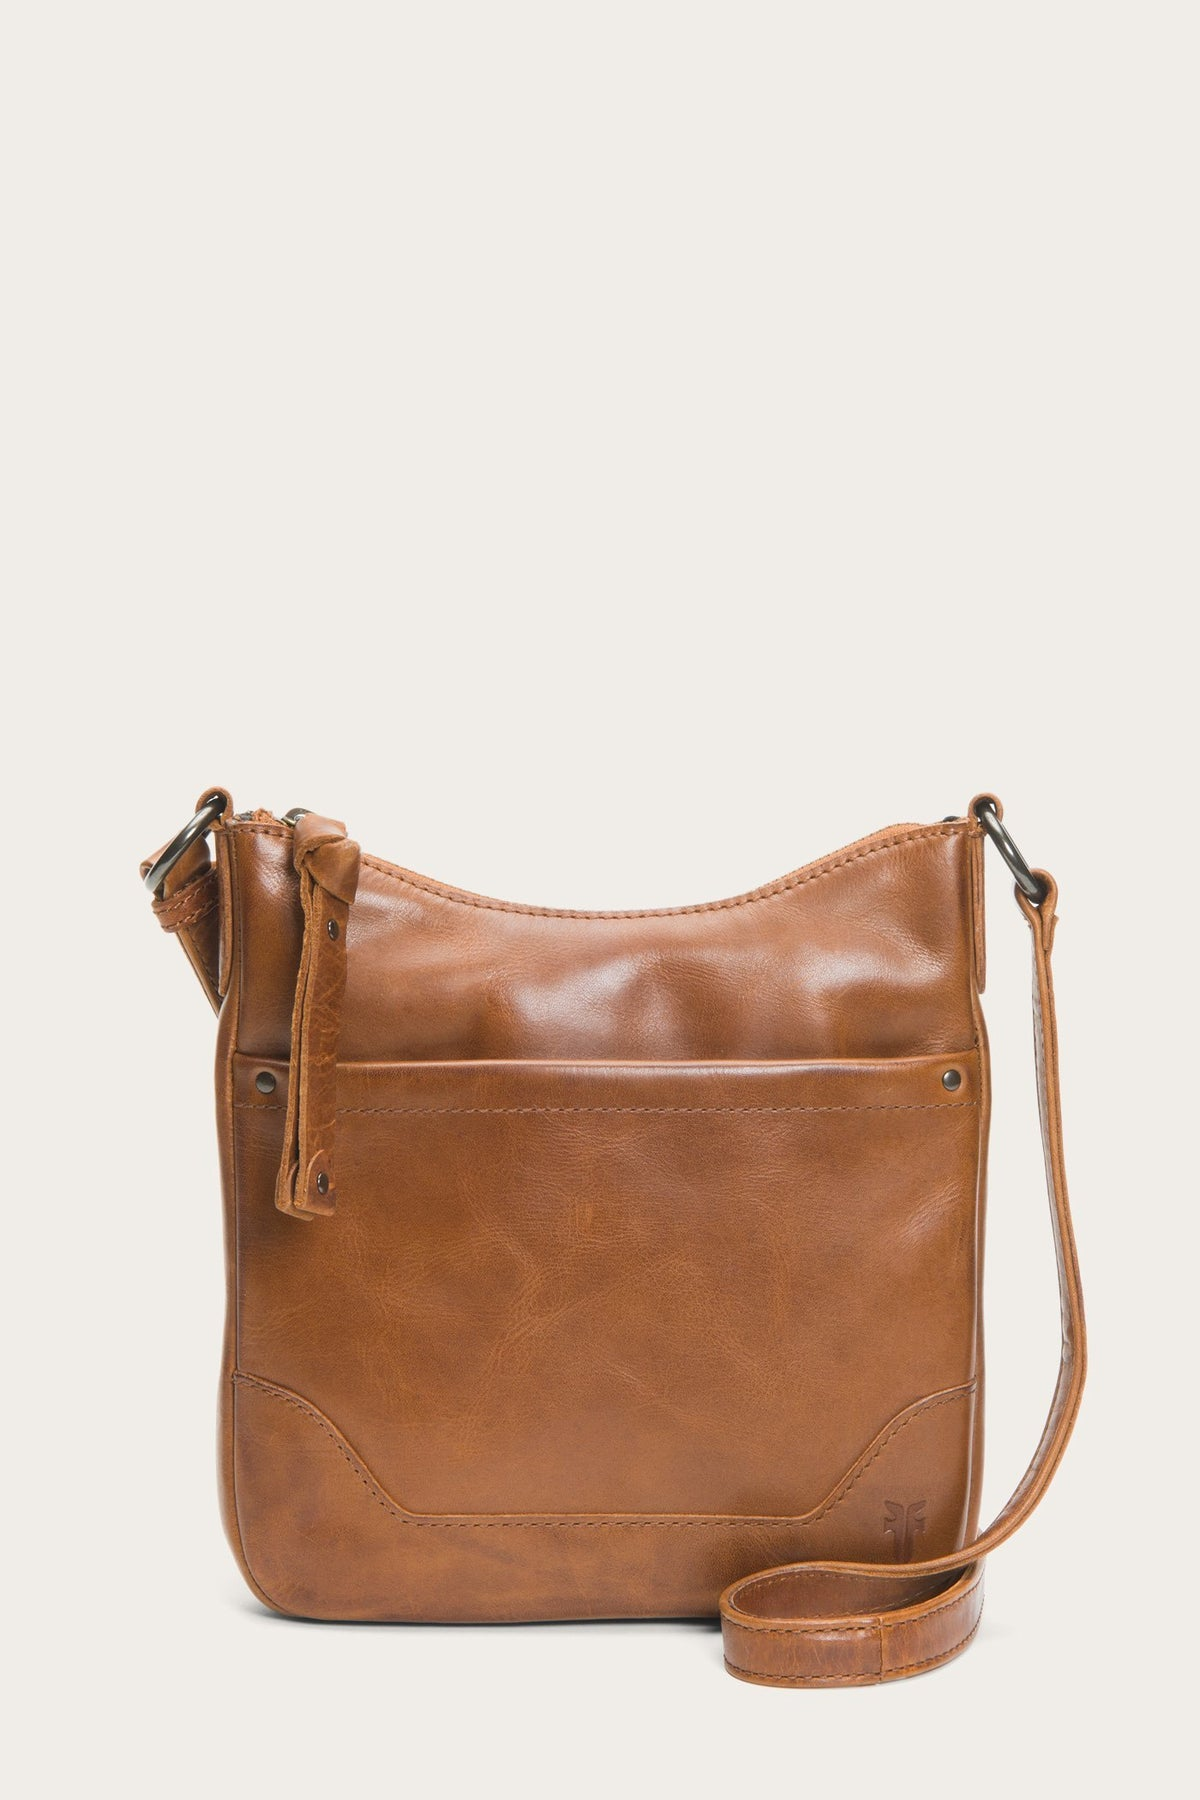 The Frye Company Accessories Cognac / O/S Melissa Swing Pack in Cognac